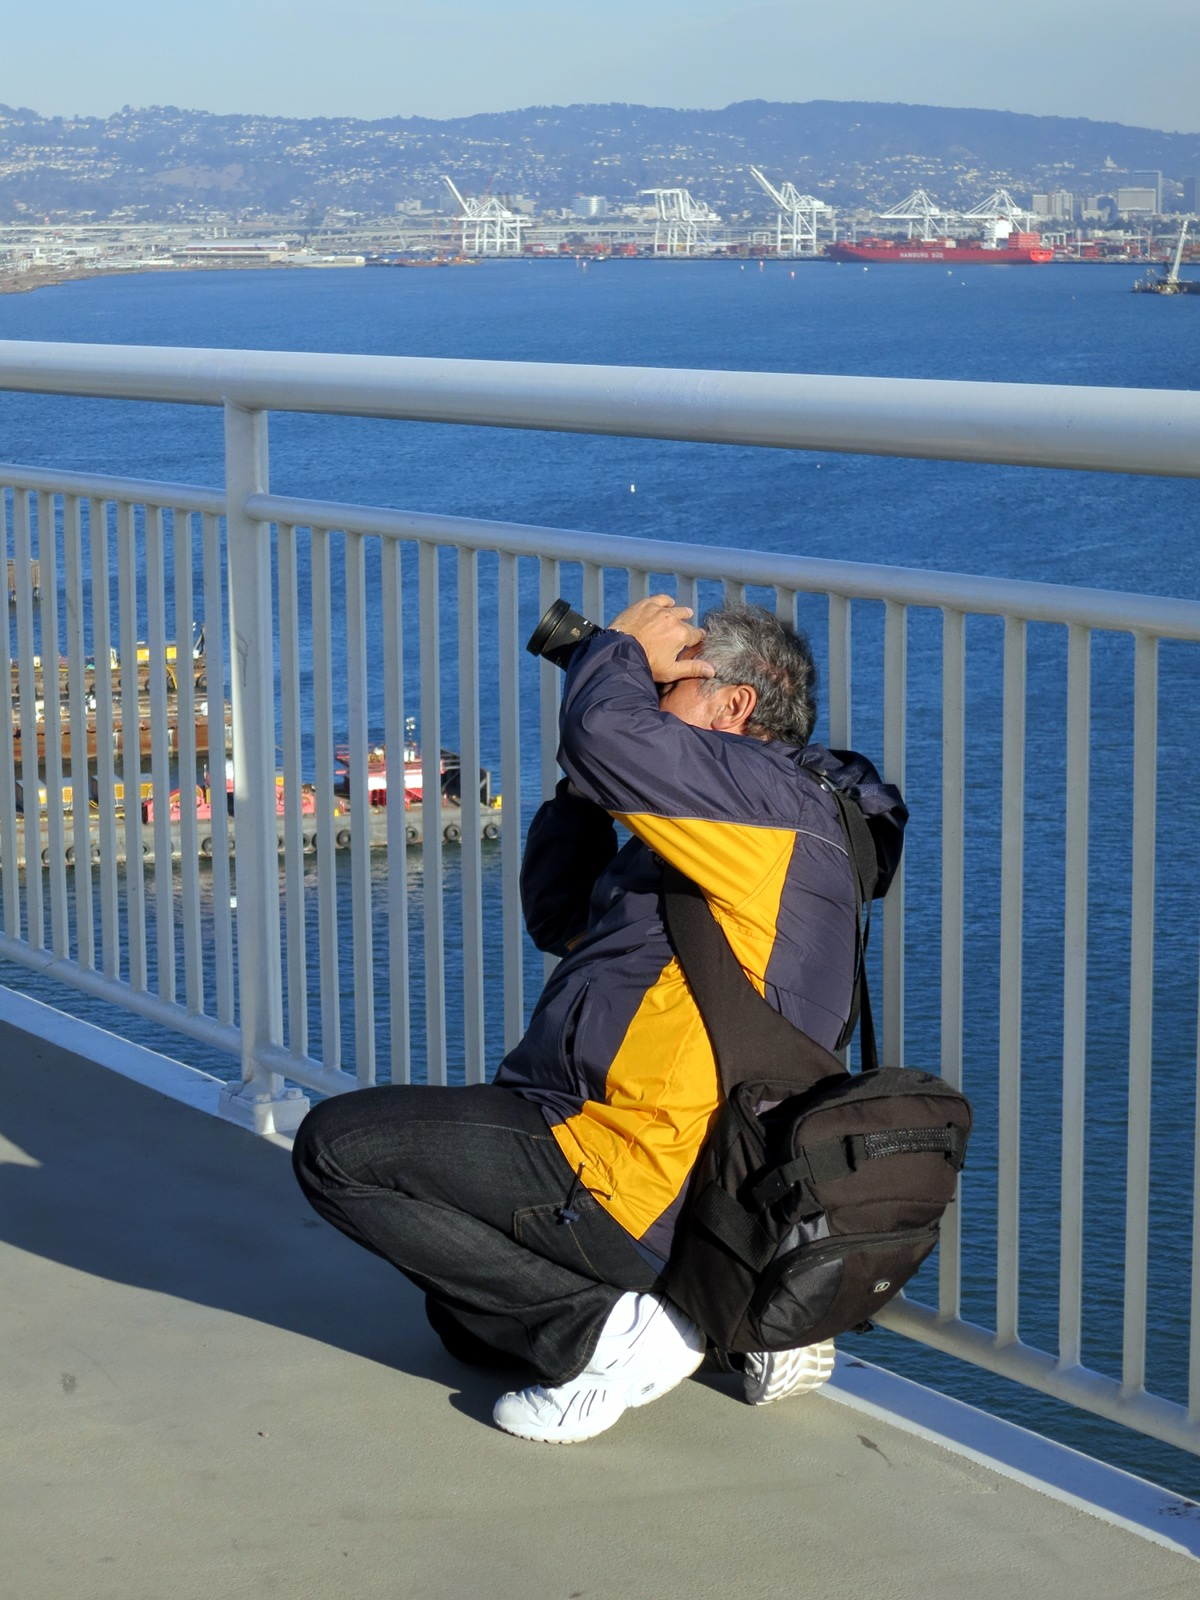 Bay bridge Assay 1: photographer at work.